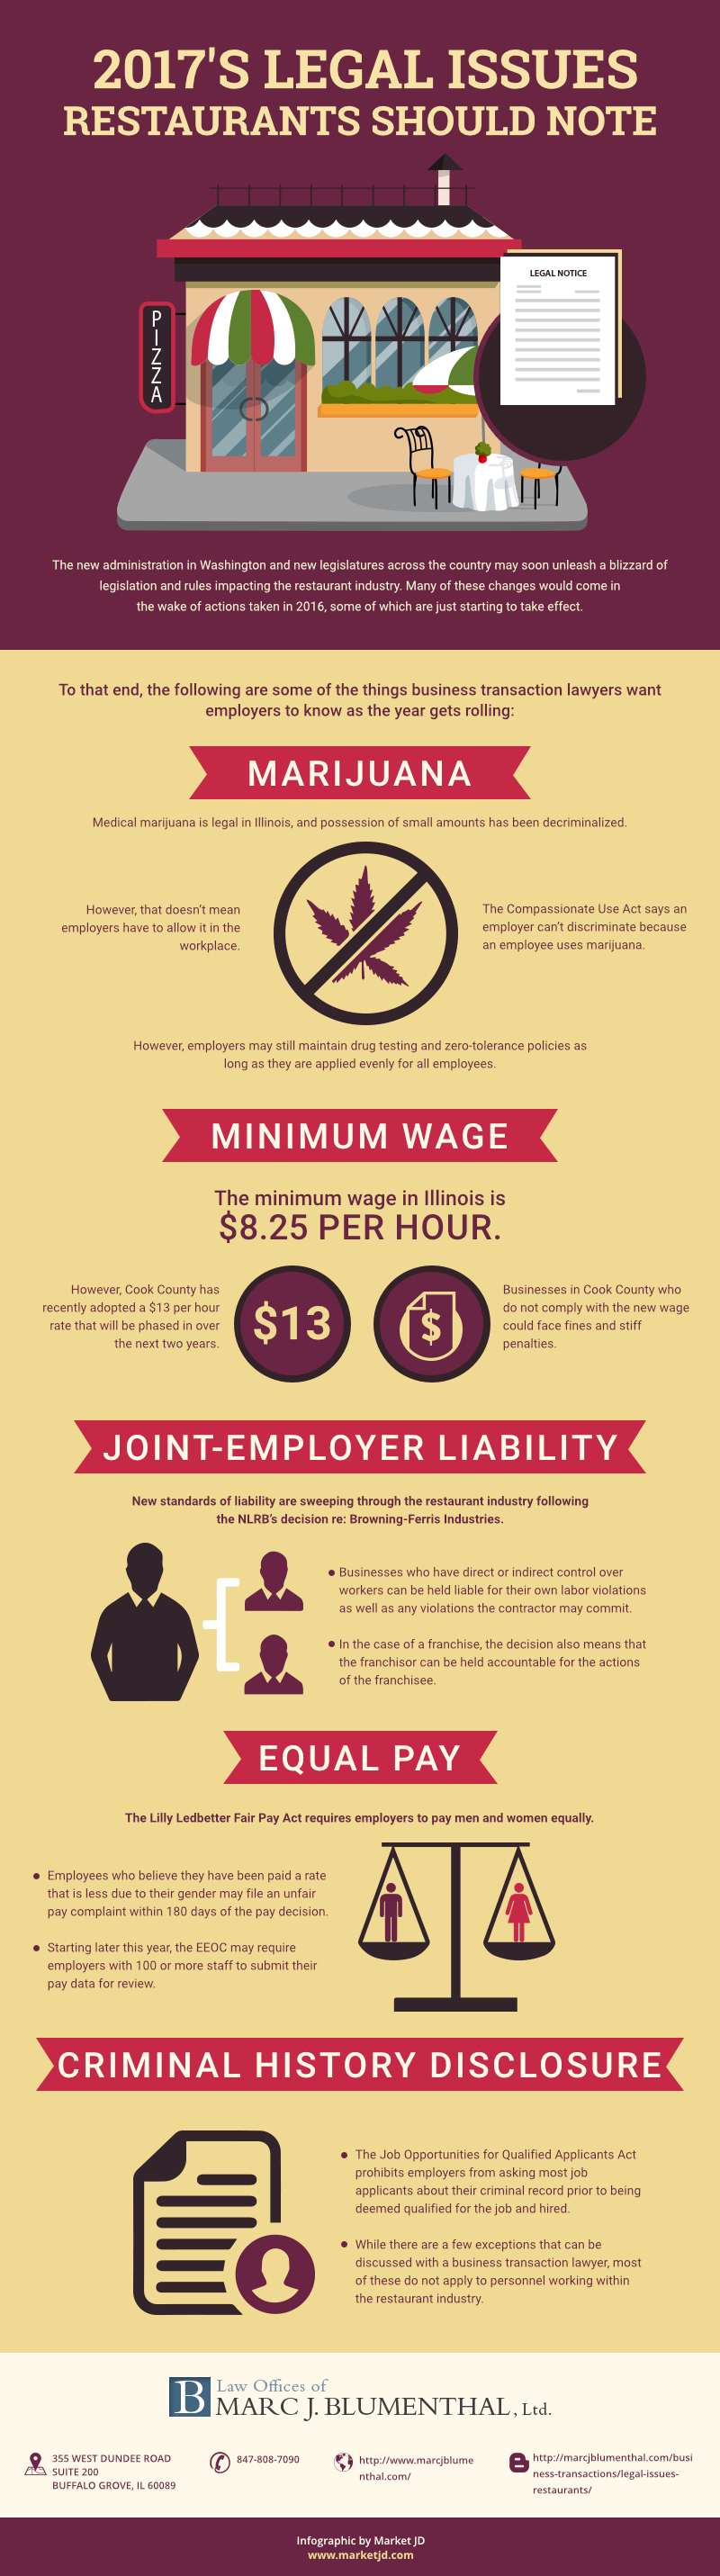 infographic_Employer Legal Issues for Restaurants 2017